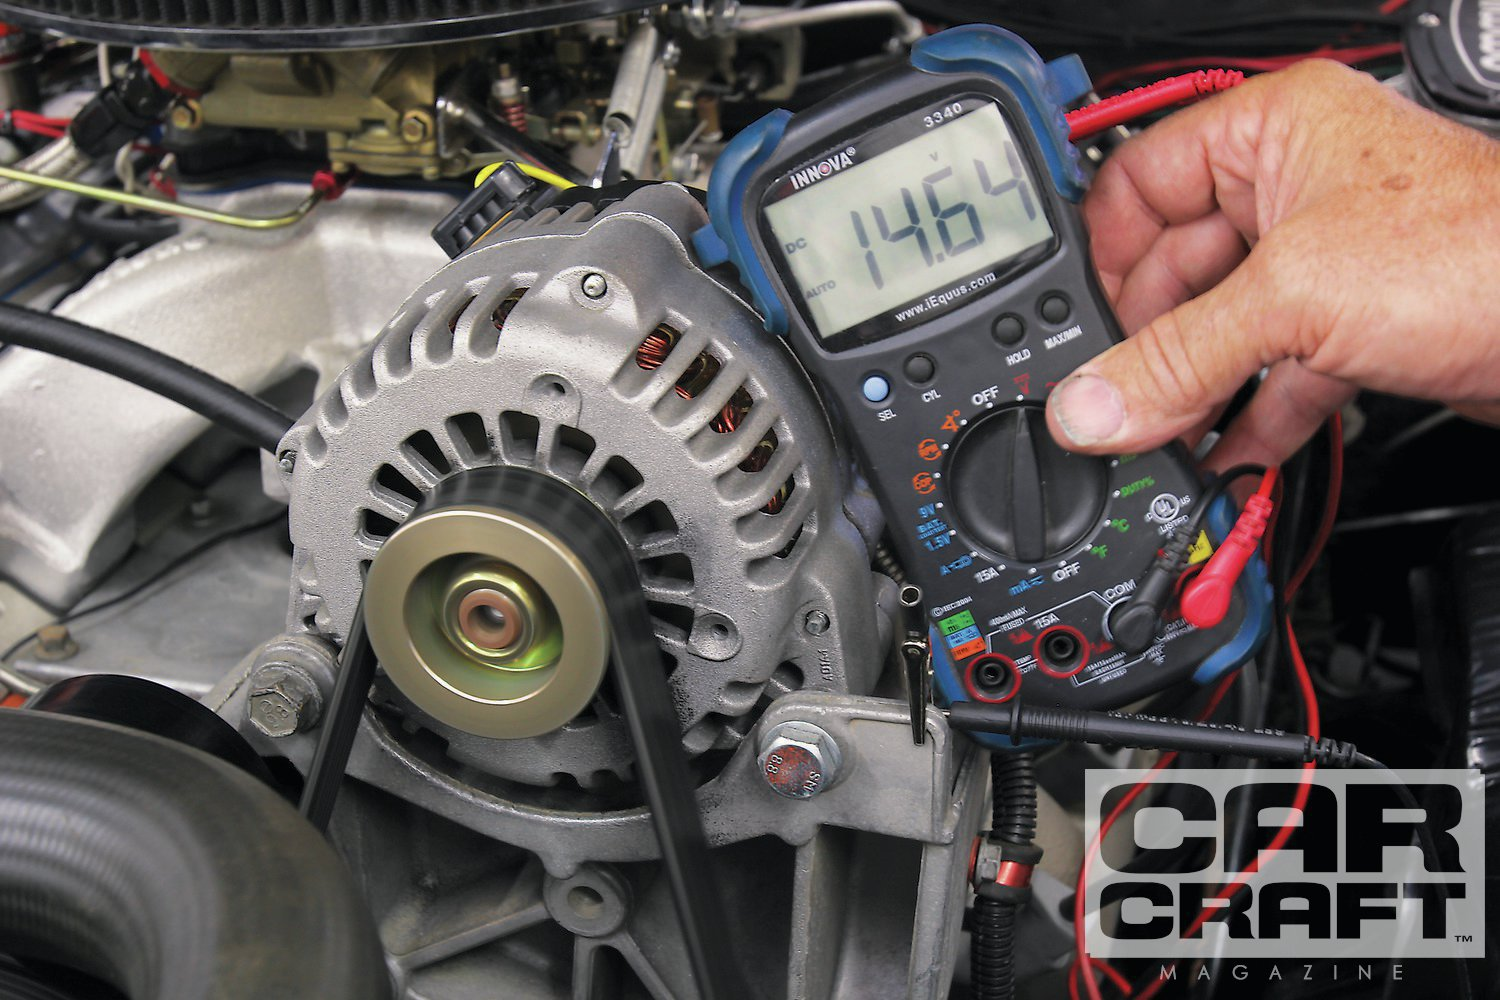 Street Rod Wiring Diagram For Alternator Get Free Image About Wiring